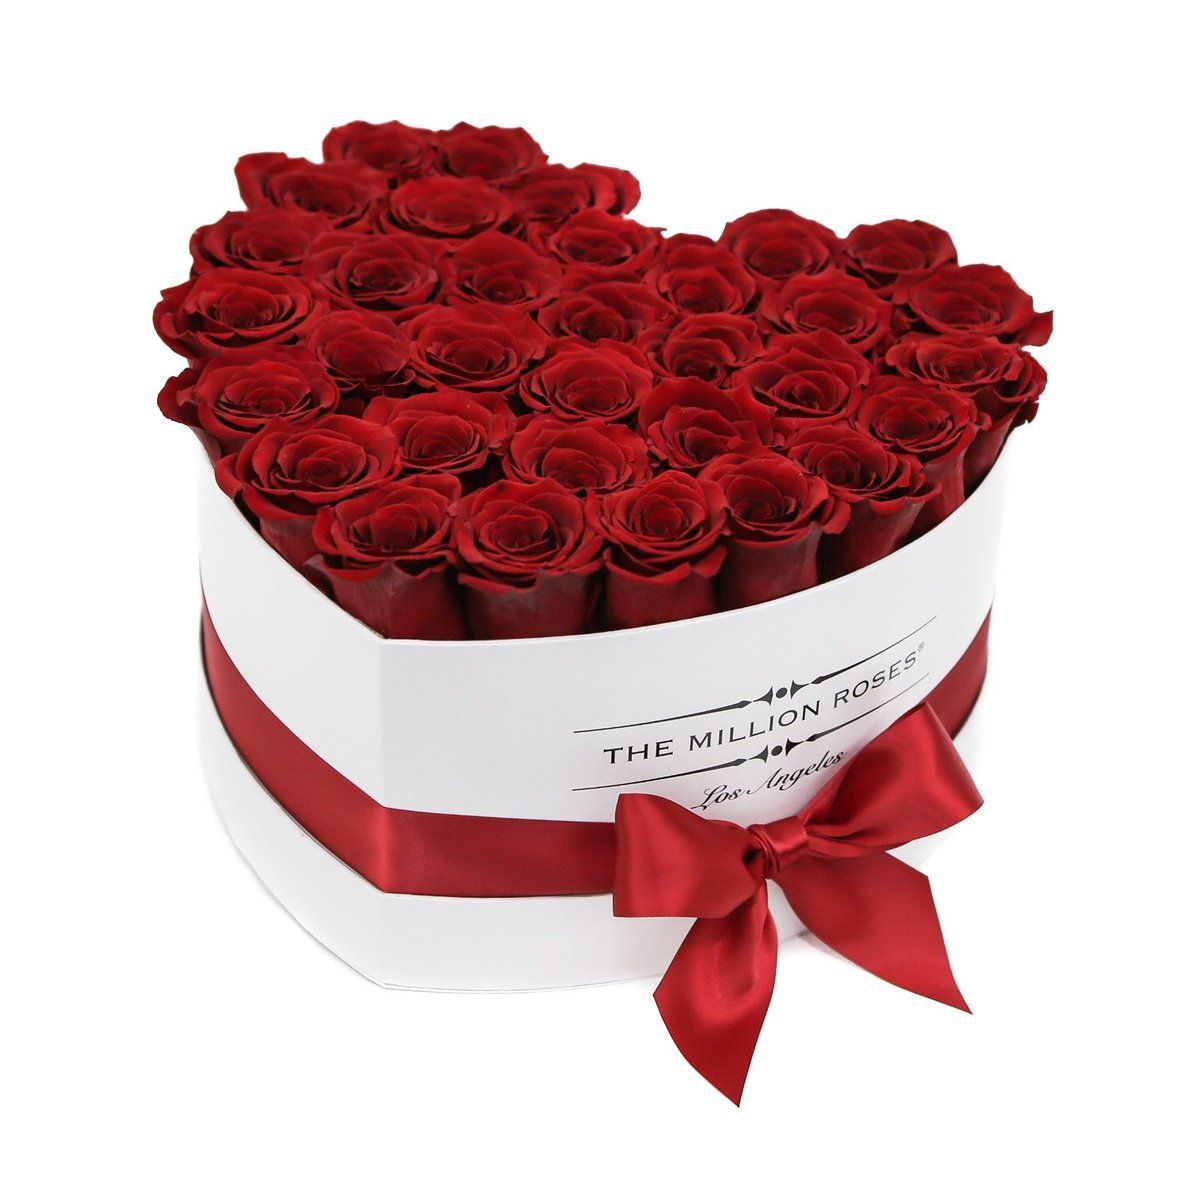 Love Box White Red Roses Red Eternity Roses The Million Roses Million Roses Luxury Flowers Rose